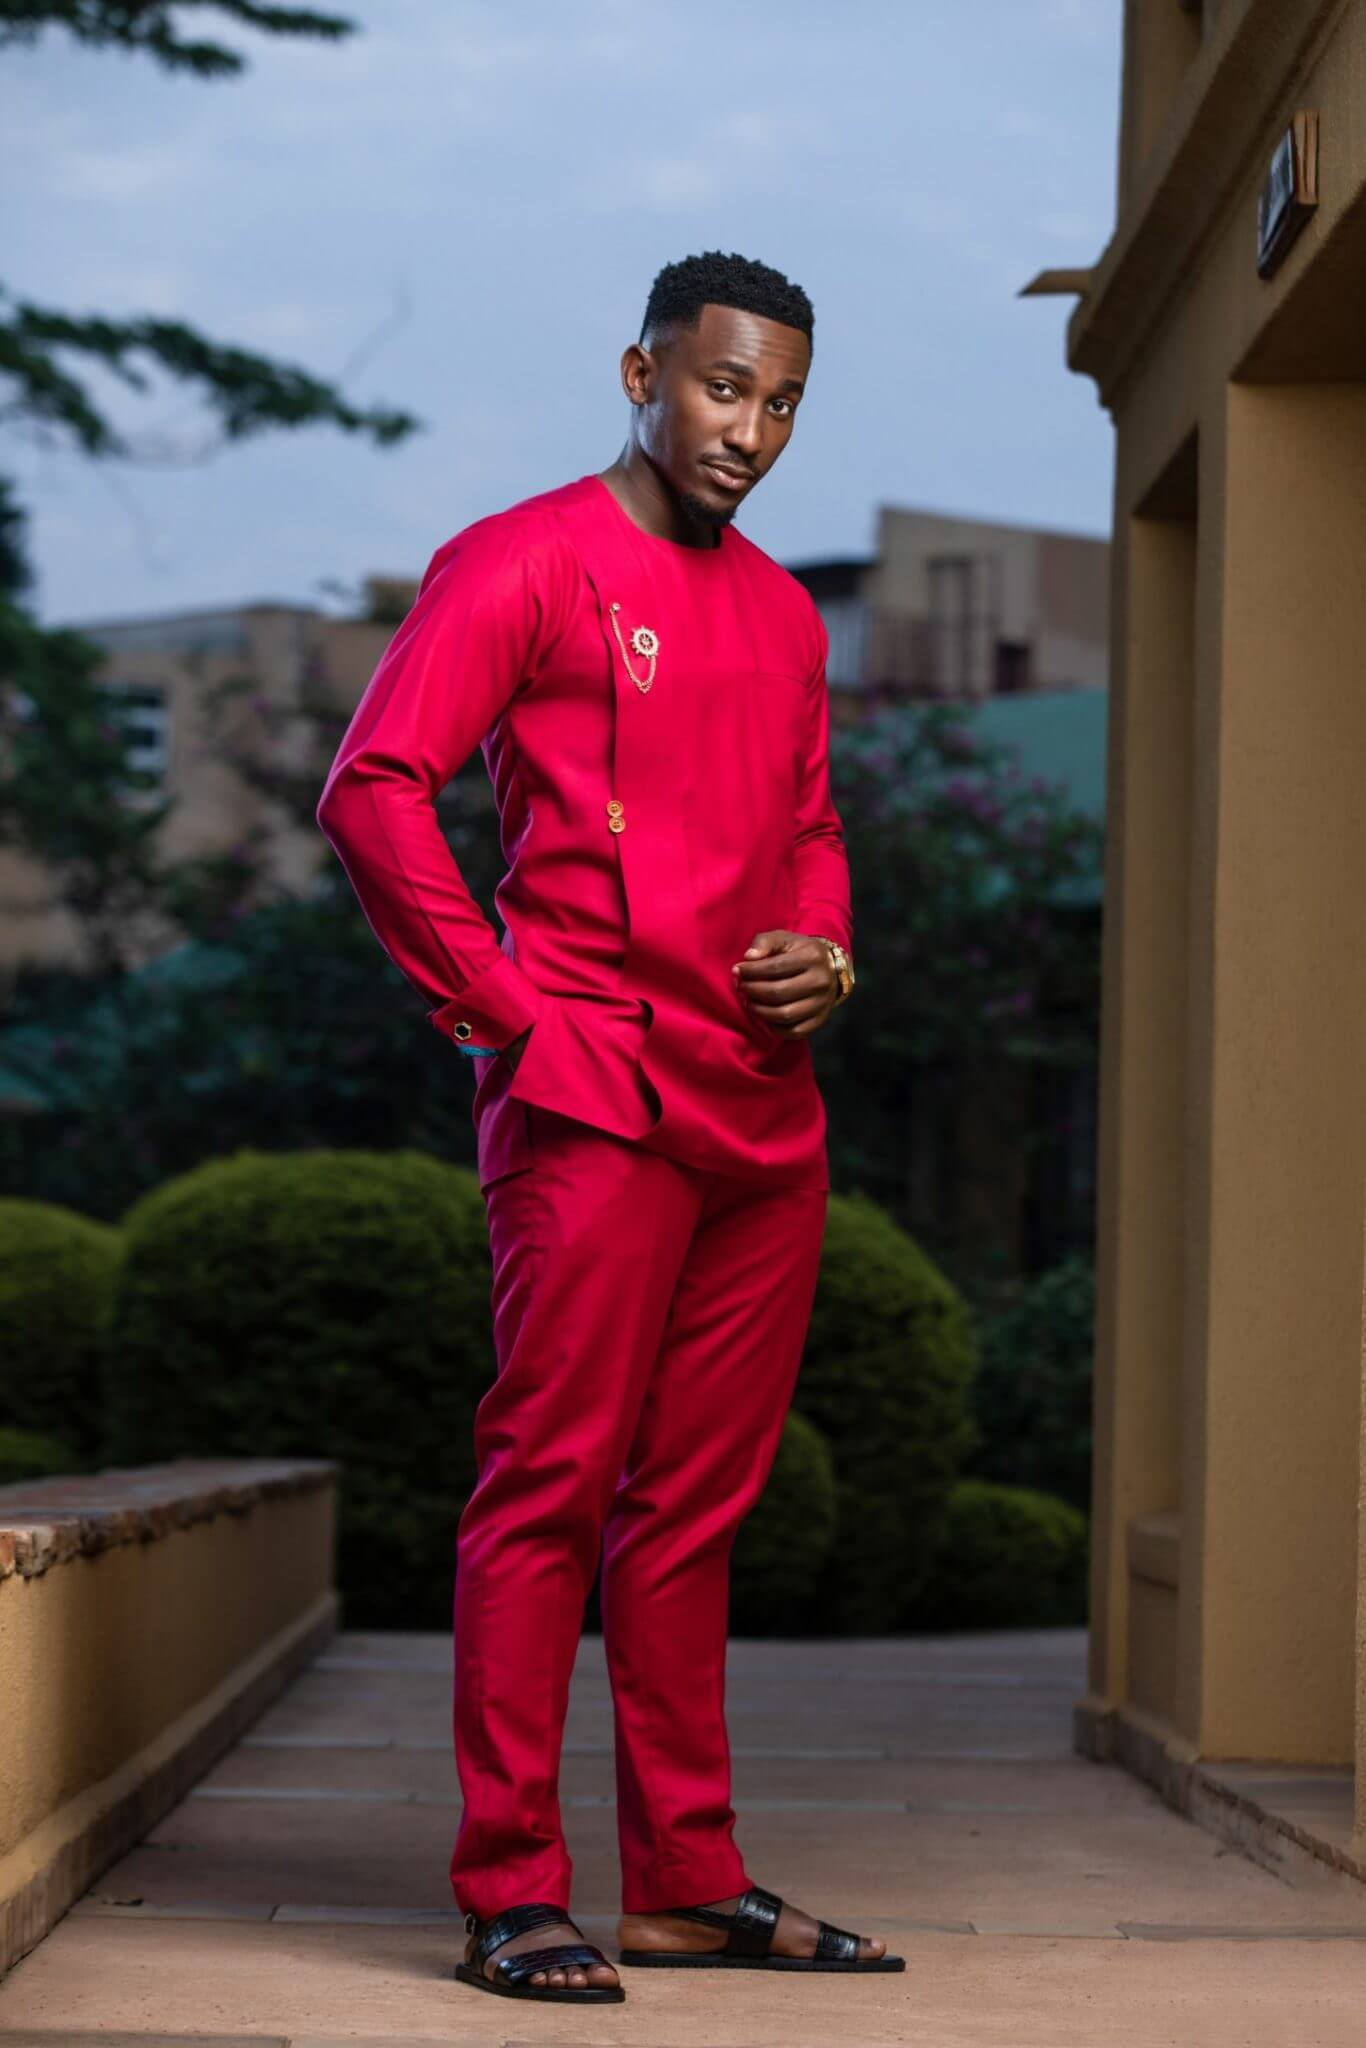 10Larry Casual Kampala Menswear scaled 1 scaled